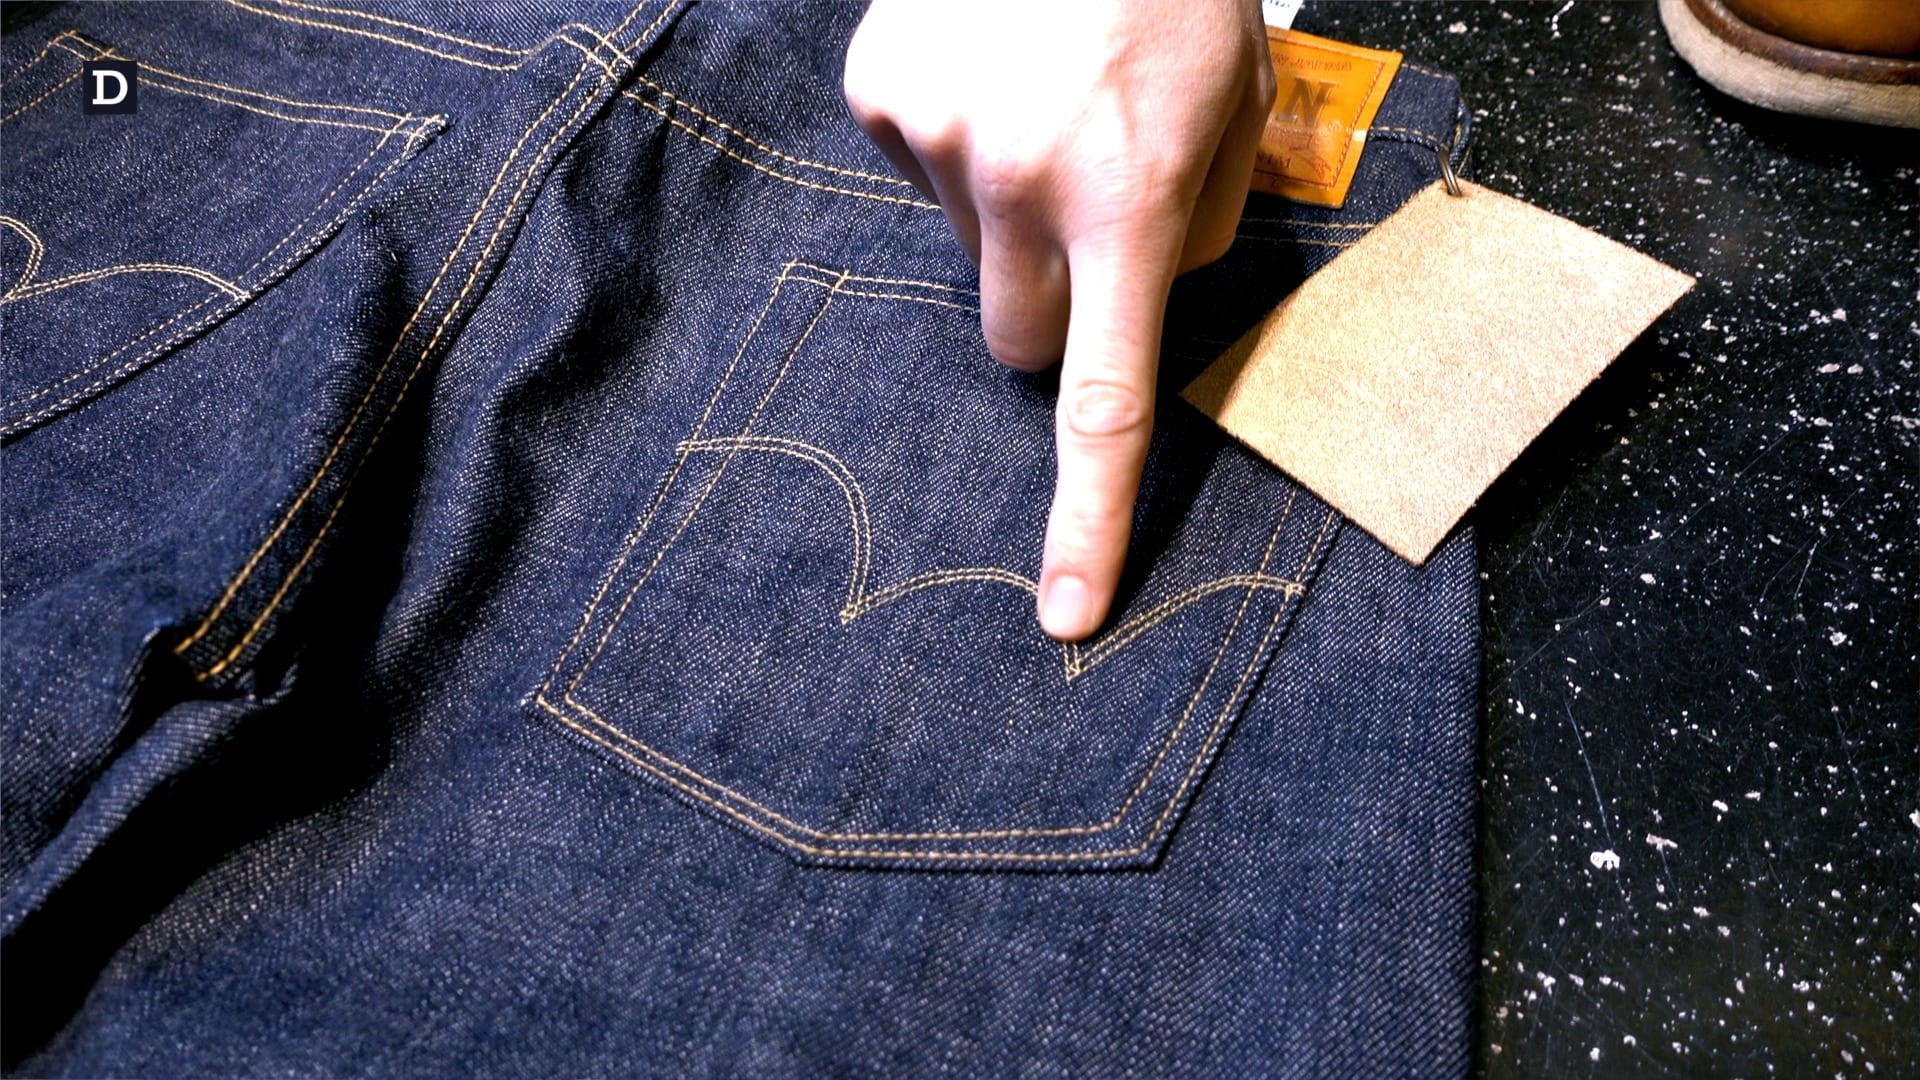 How to sell jeans course